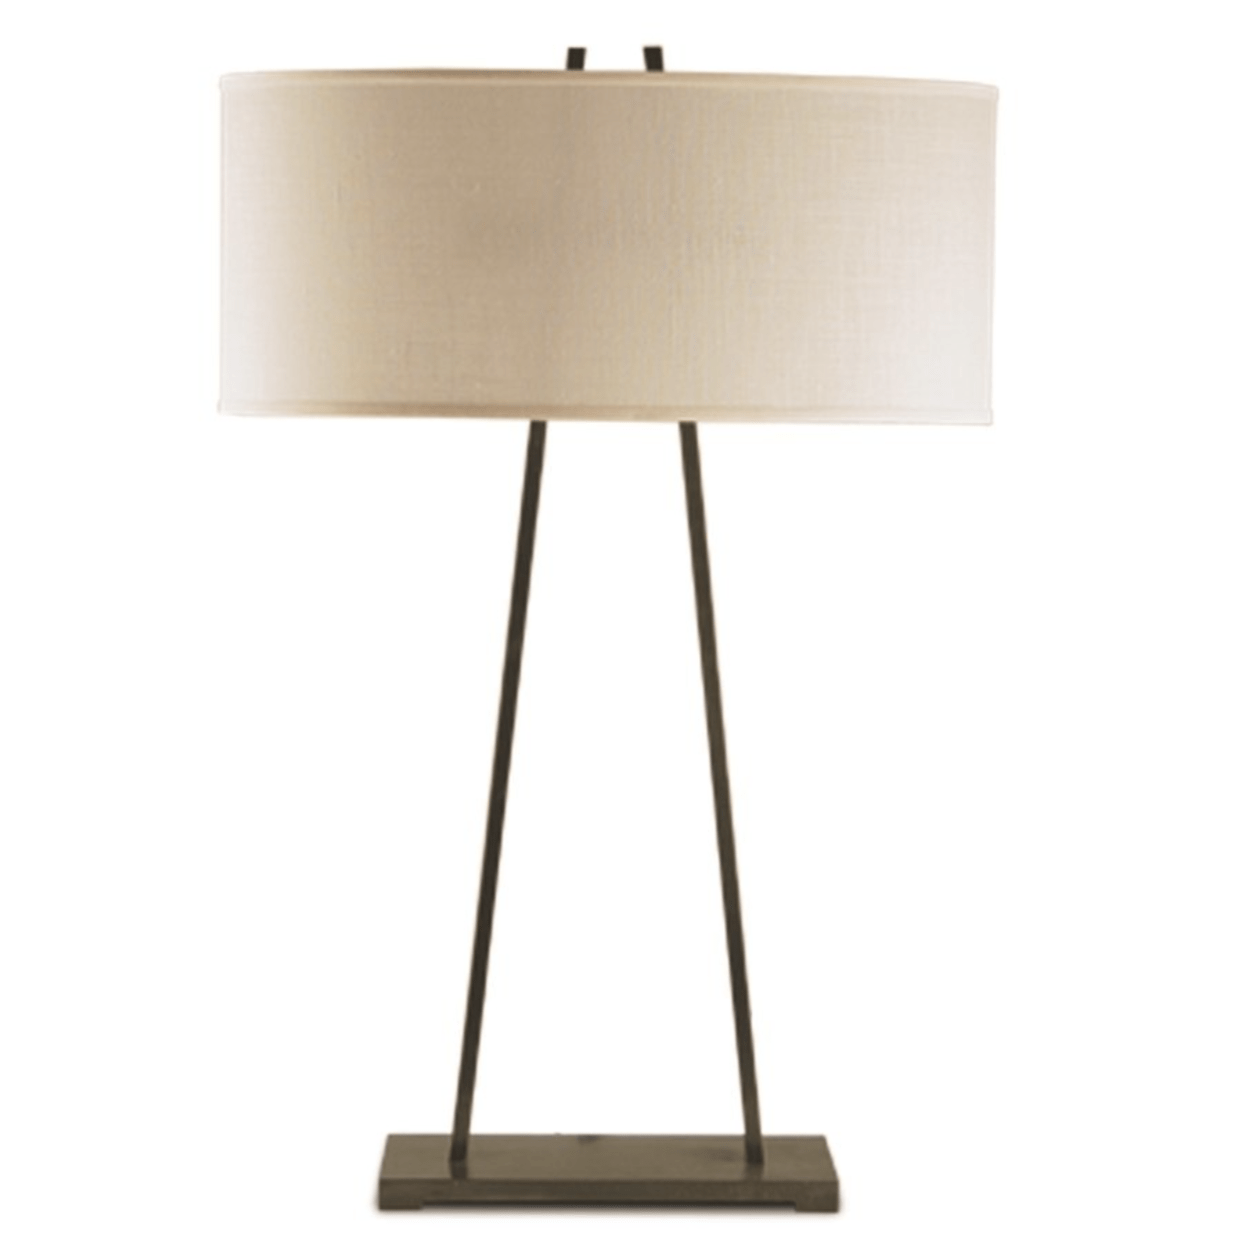 A Frame Table Lamp lighting shops lighting stores LED lights  lighting designer